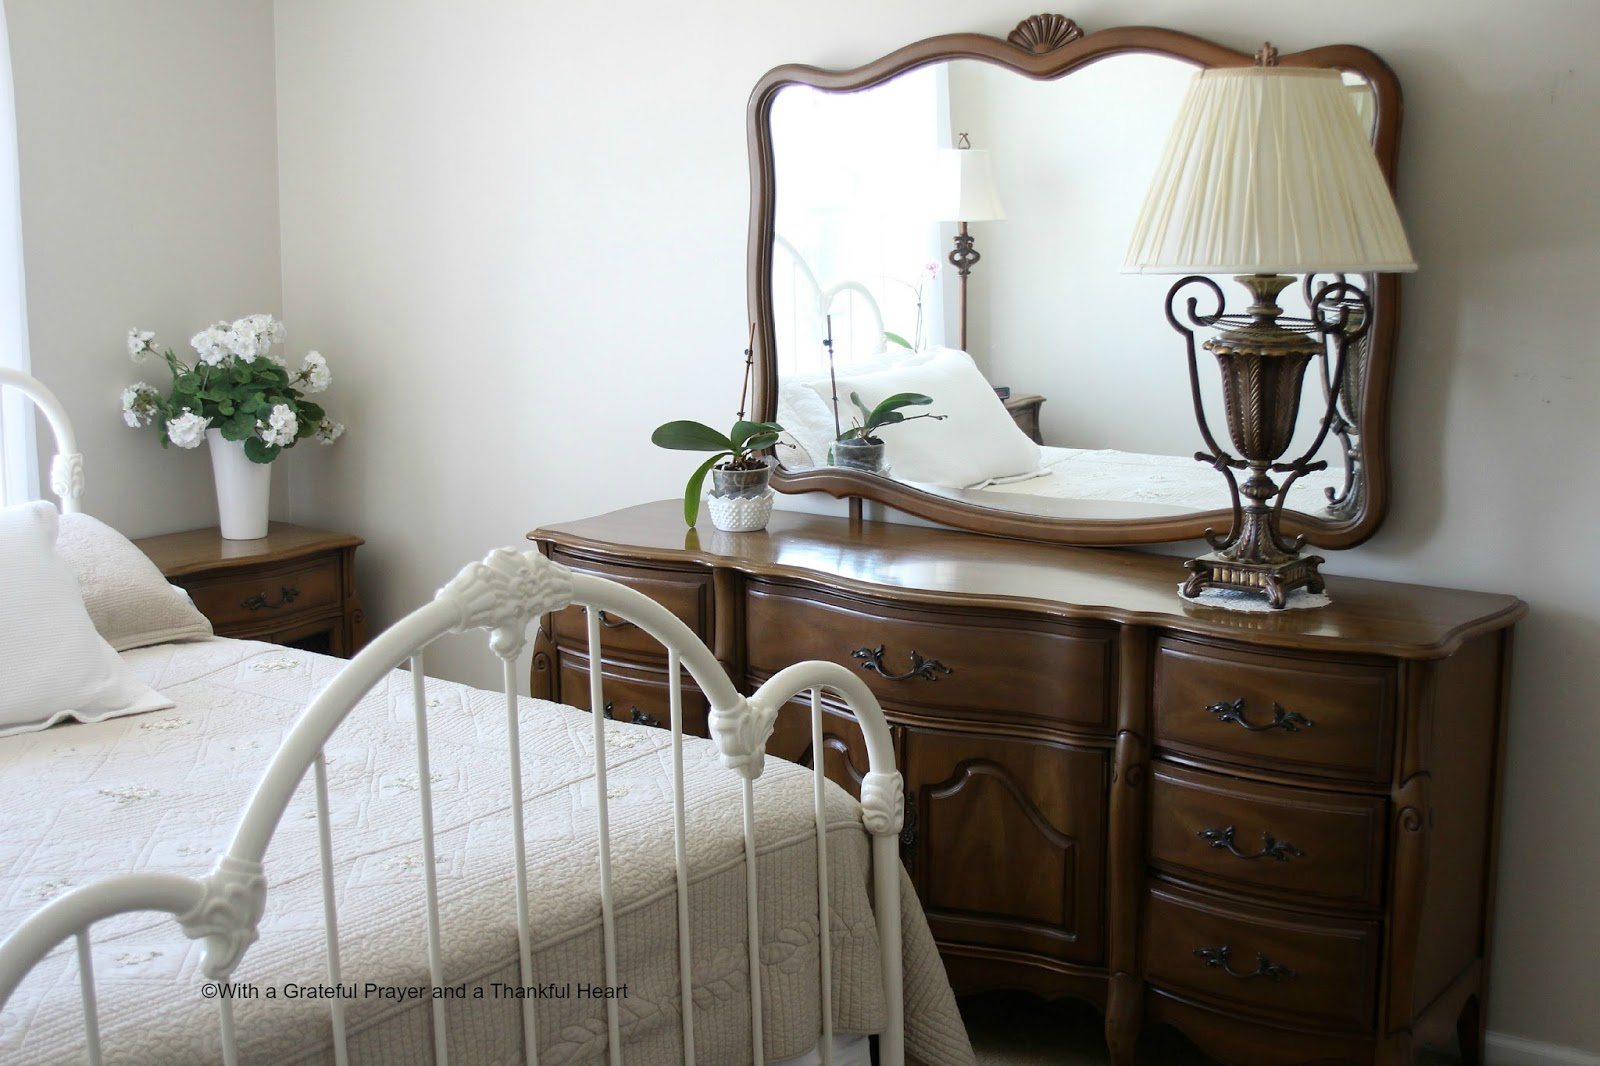 Vintage French Provincial Bedroom Set | Grateful Prayer ...